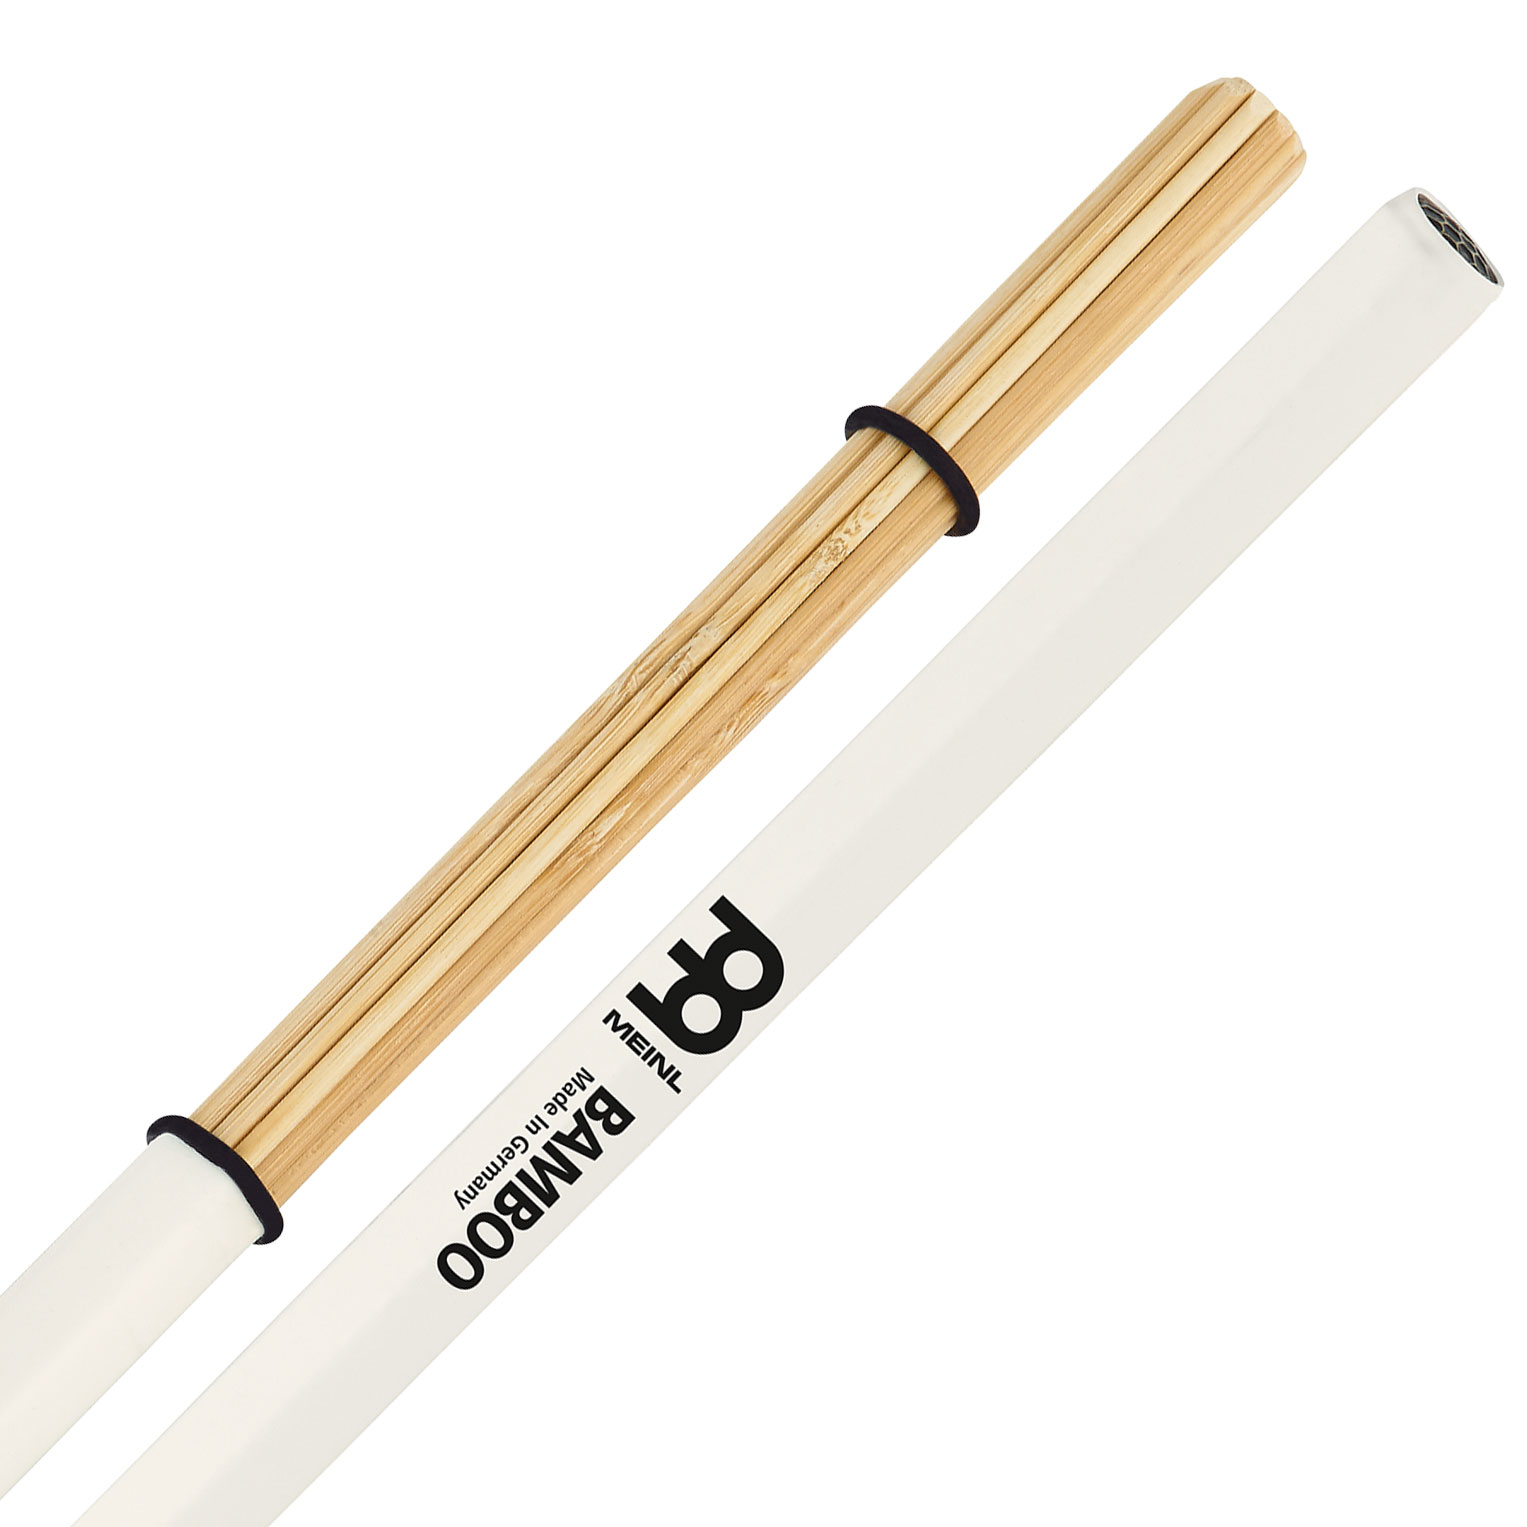 Meinl Bamboo Multi-Sticks with Extra-Long Grip